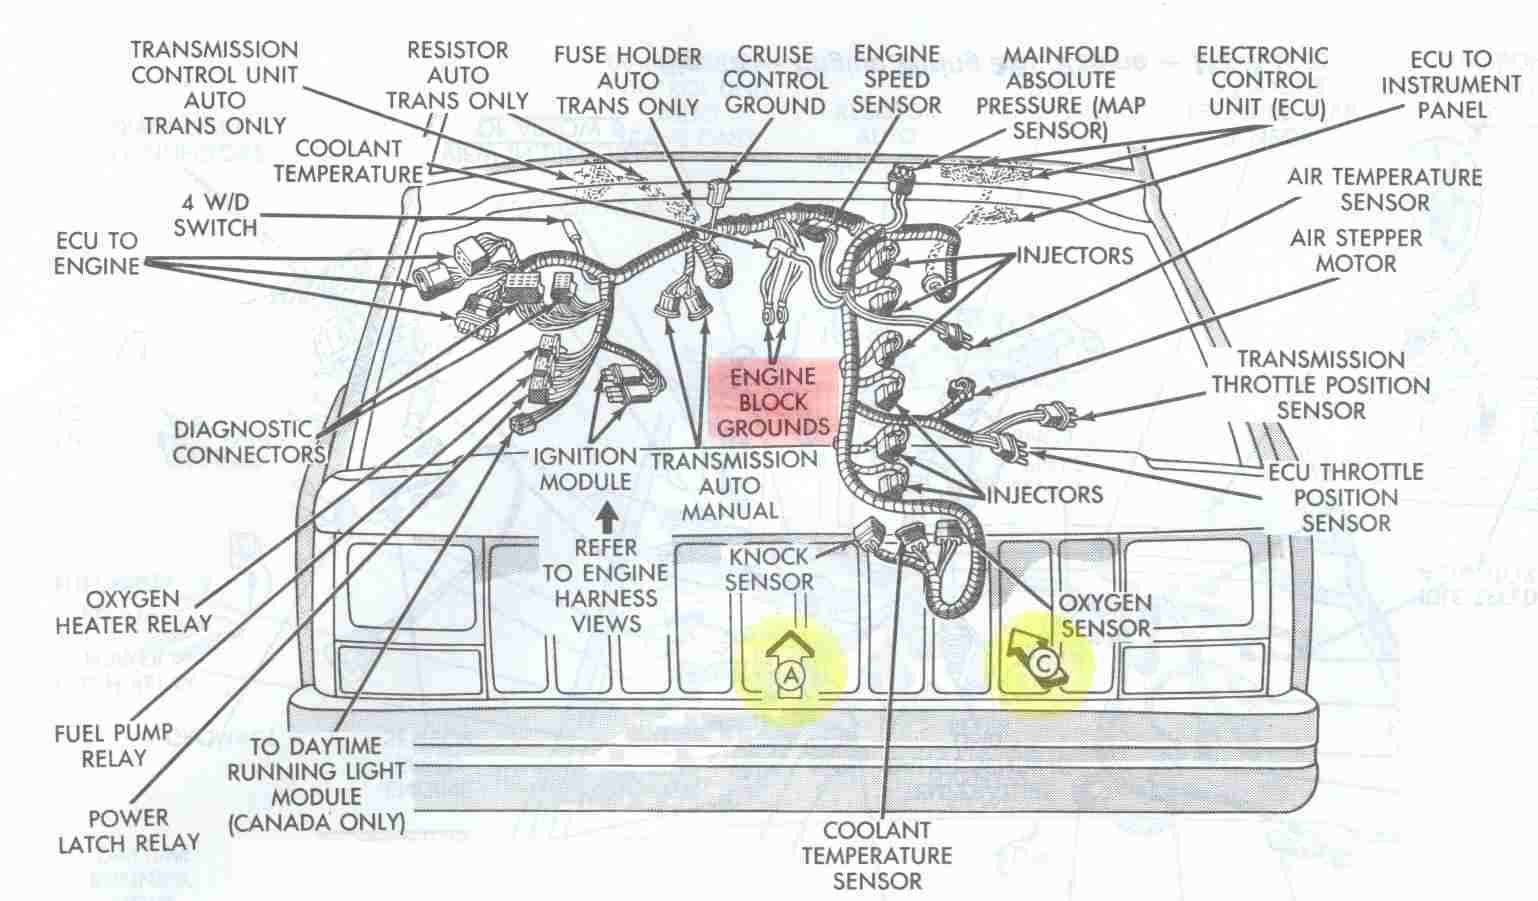 ab0134a7d9e021431187af597eb4aeca engine bay schematic showing major electrical ground points for 2004 jeep wrangler engine diagram at aneh.co